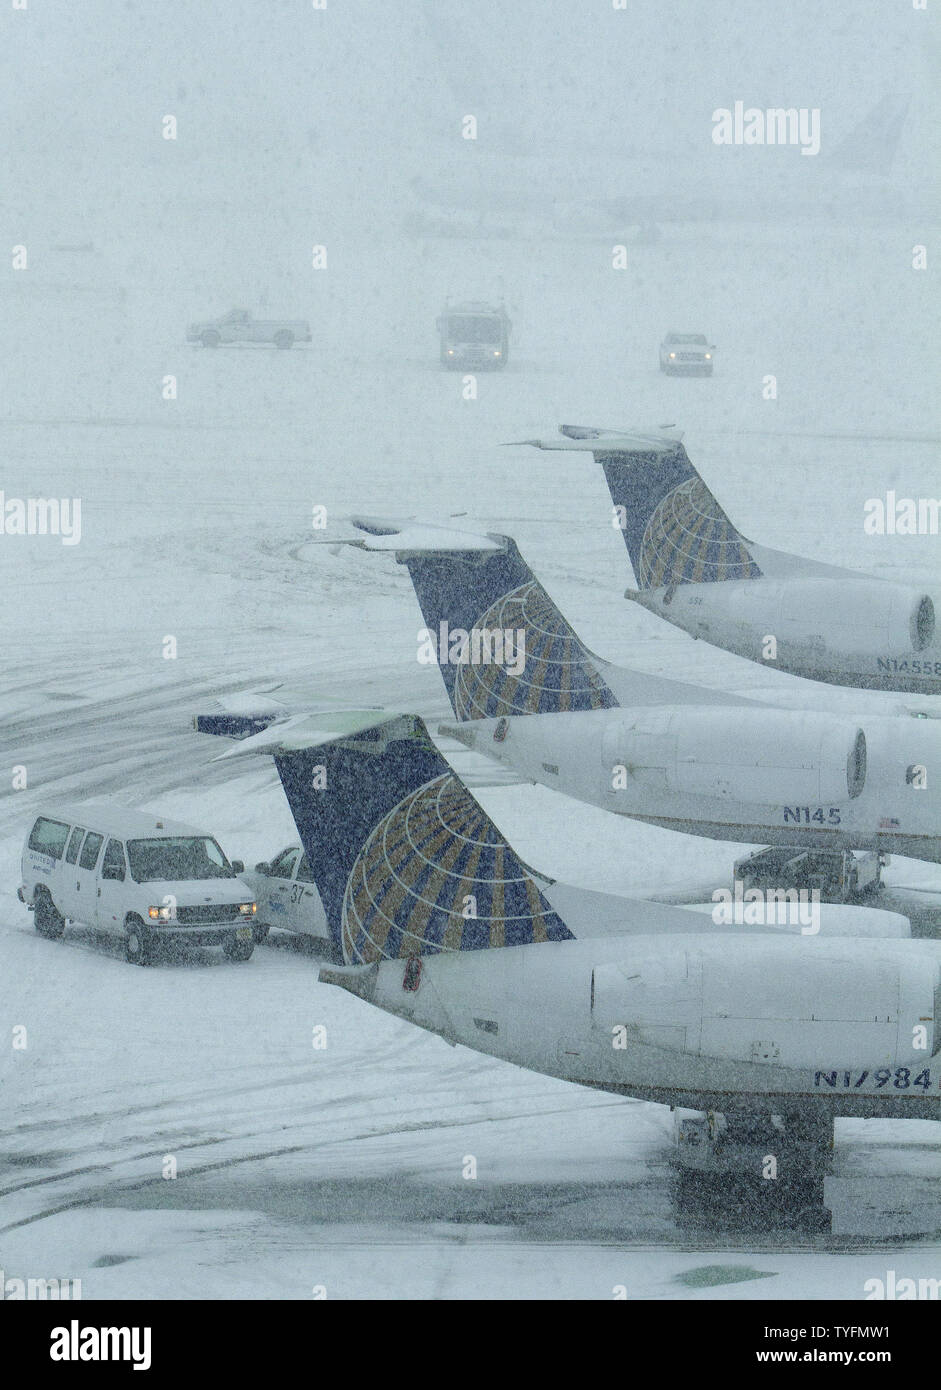 A snowstorm obscures planes in the background at Newark Airport in Newark, New Jersey on February 3, 2014.  6-8 of inches of snow expected to fall in the tri-state area causes travel delays and cancellations.    UPI/Gary C. Caskey - Stock Image